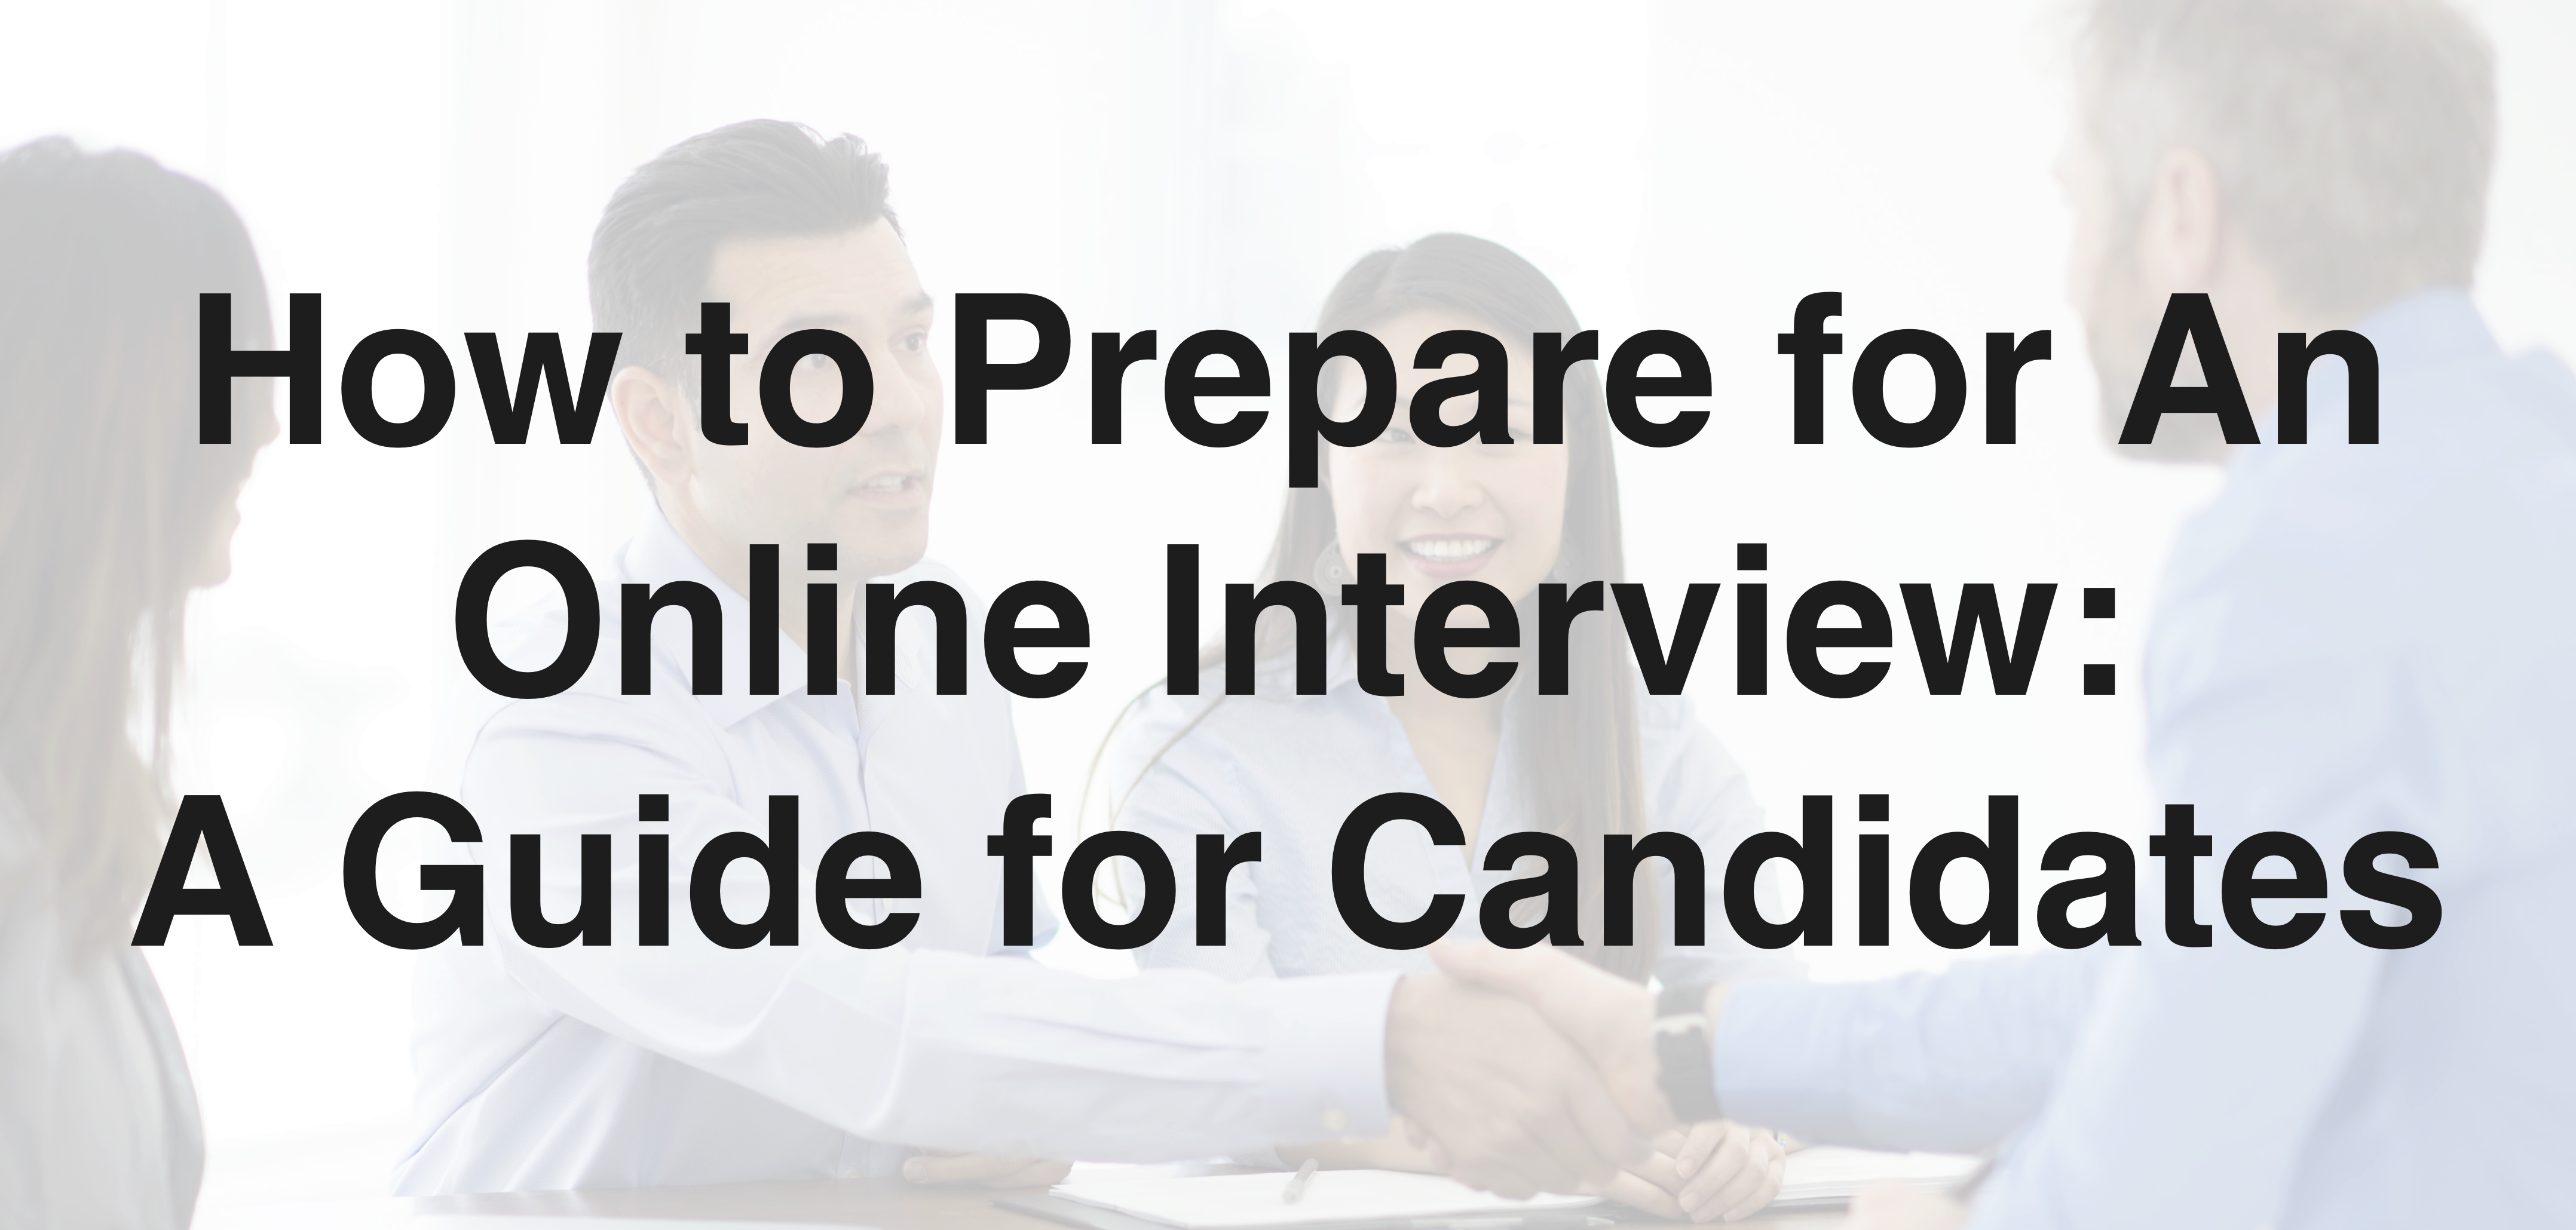 How to Prepare for An Online Interview - A Guide for Candidates